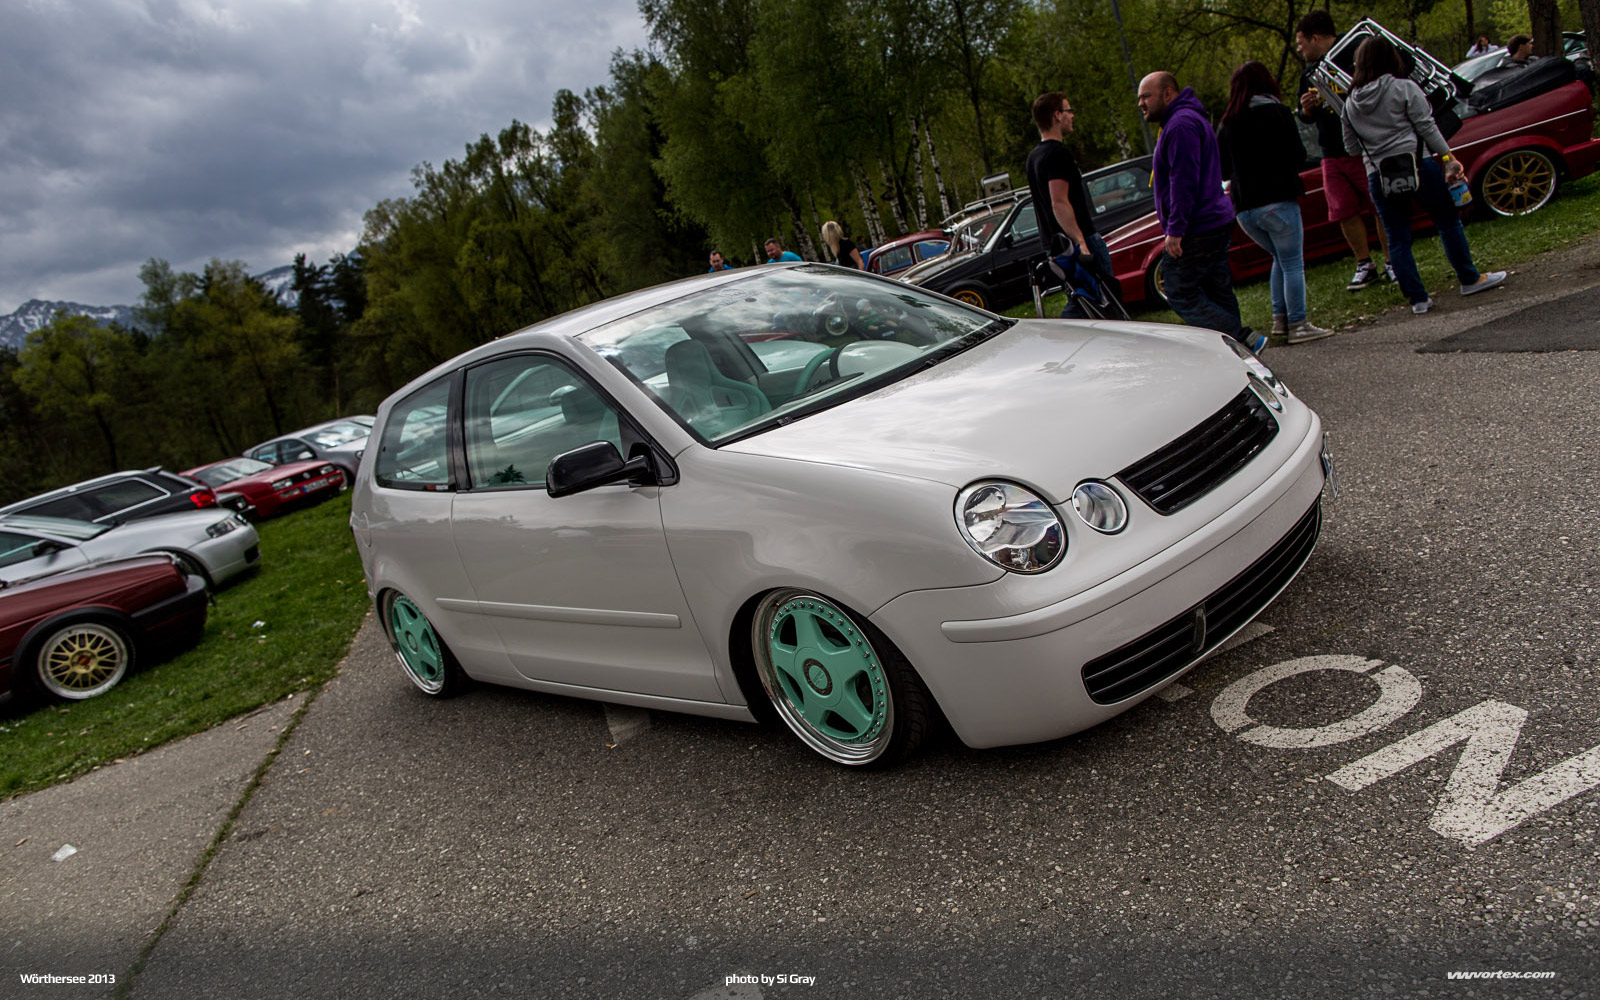 worthersee-2013-gallery-si-gray-080